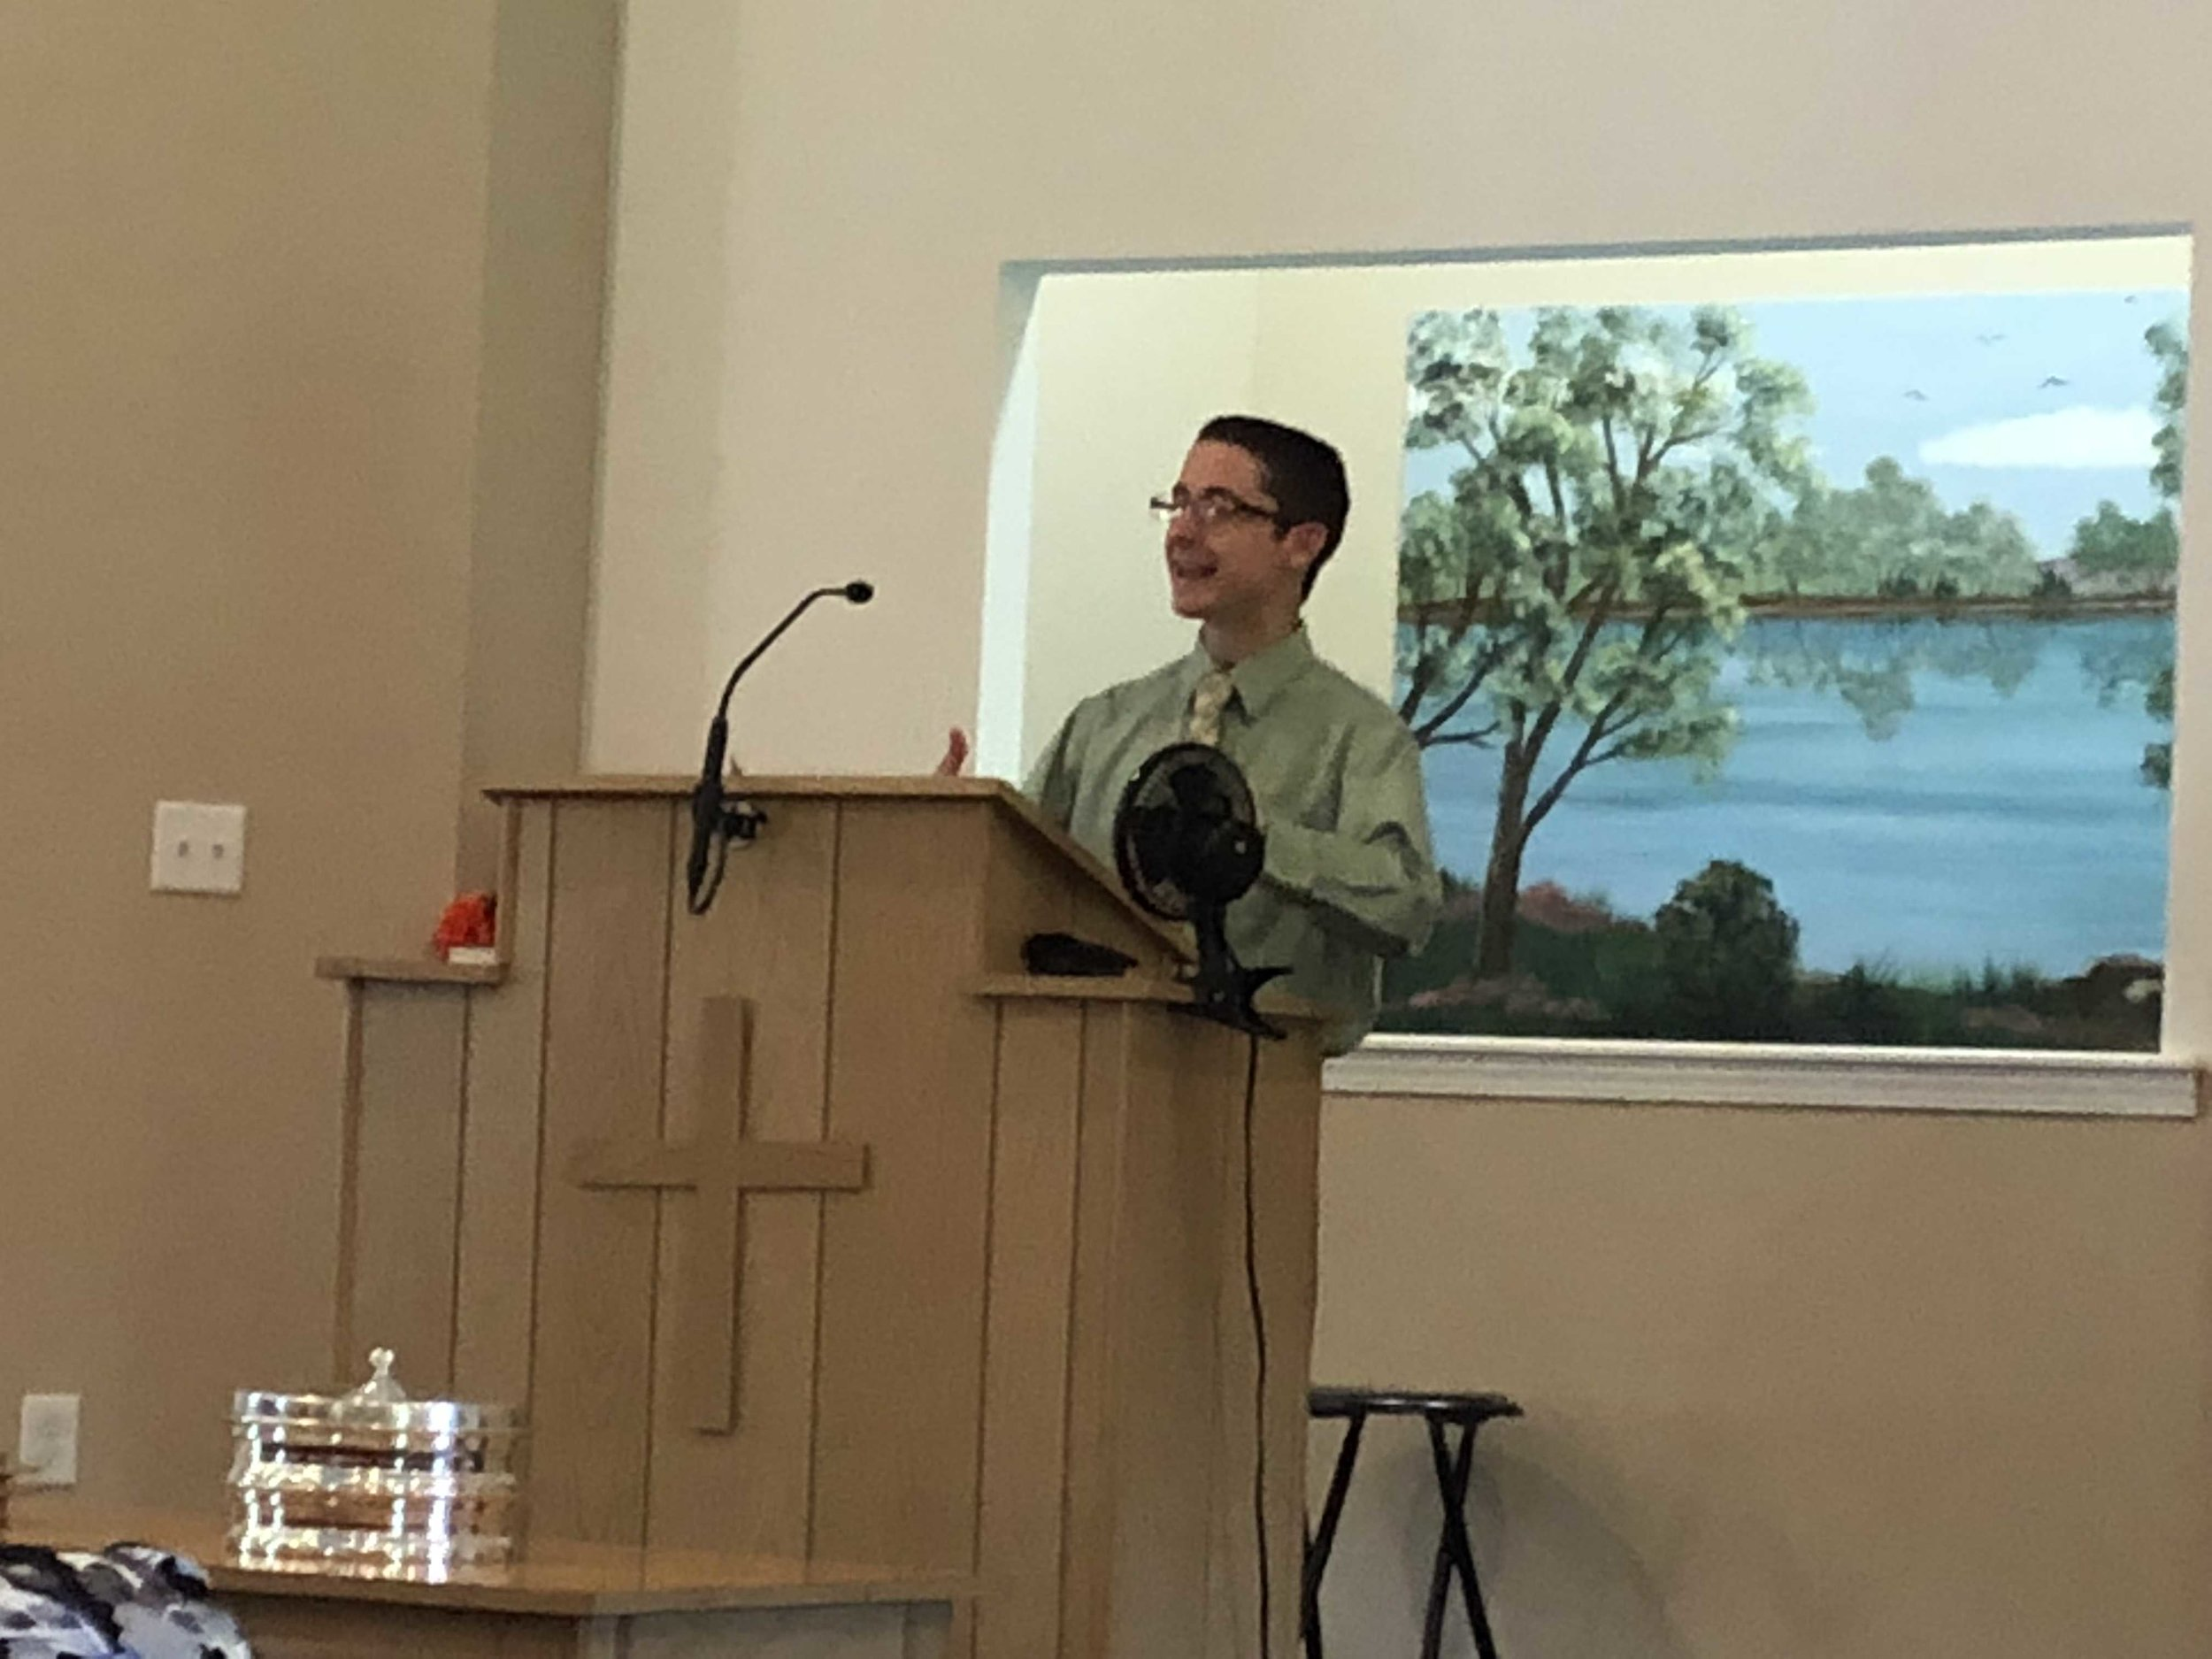 Photo of Nate Birt, author of Frozen, But Not Forgotten, speaking at a church.